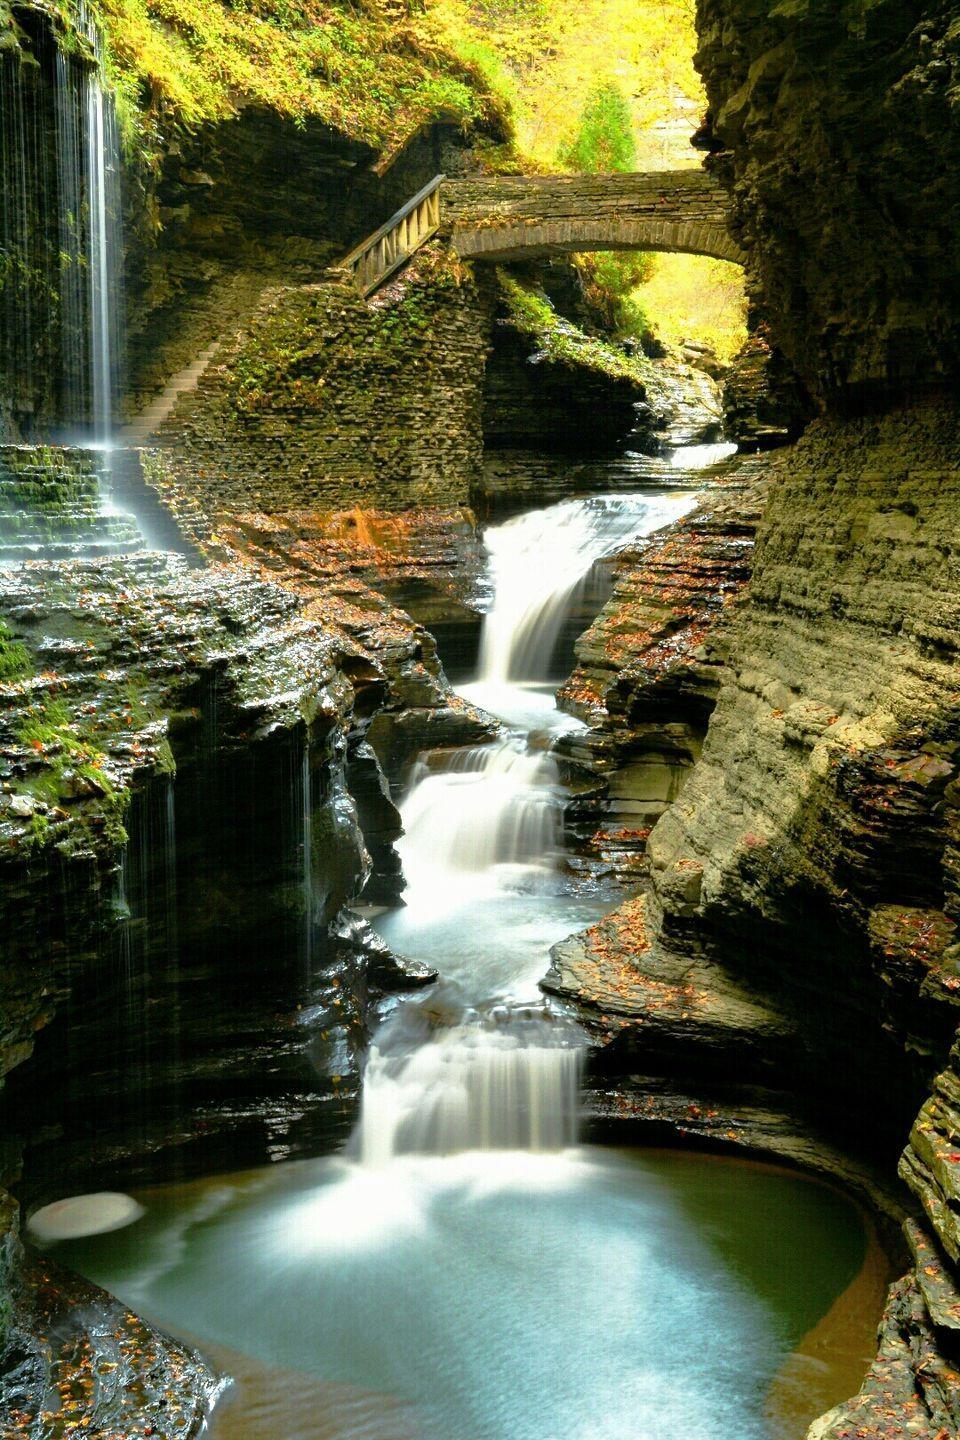 <p><strong>Where: </strong>Watkins Glen, New York</p><p><strong>Why We Love It: </strong>Located in New York's Finger Lakes Region, this narrow gorge features 19 waterfalls within the space of just two miles.</p>